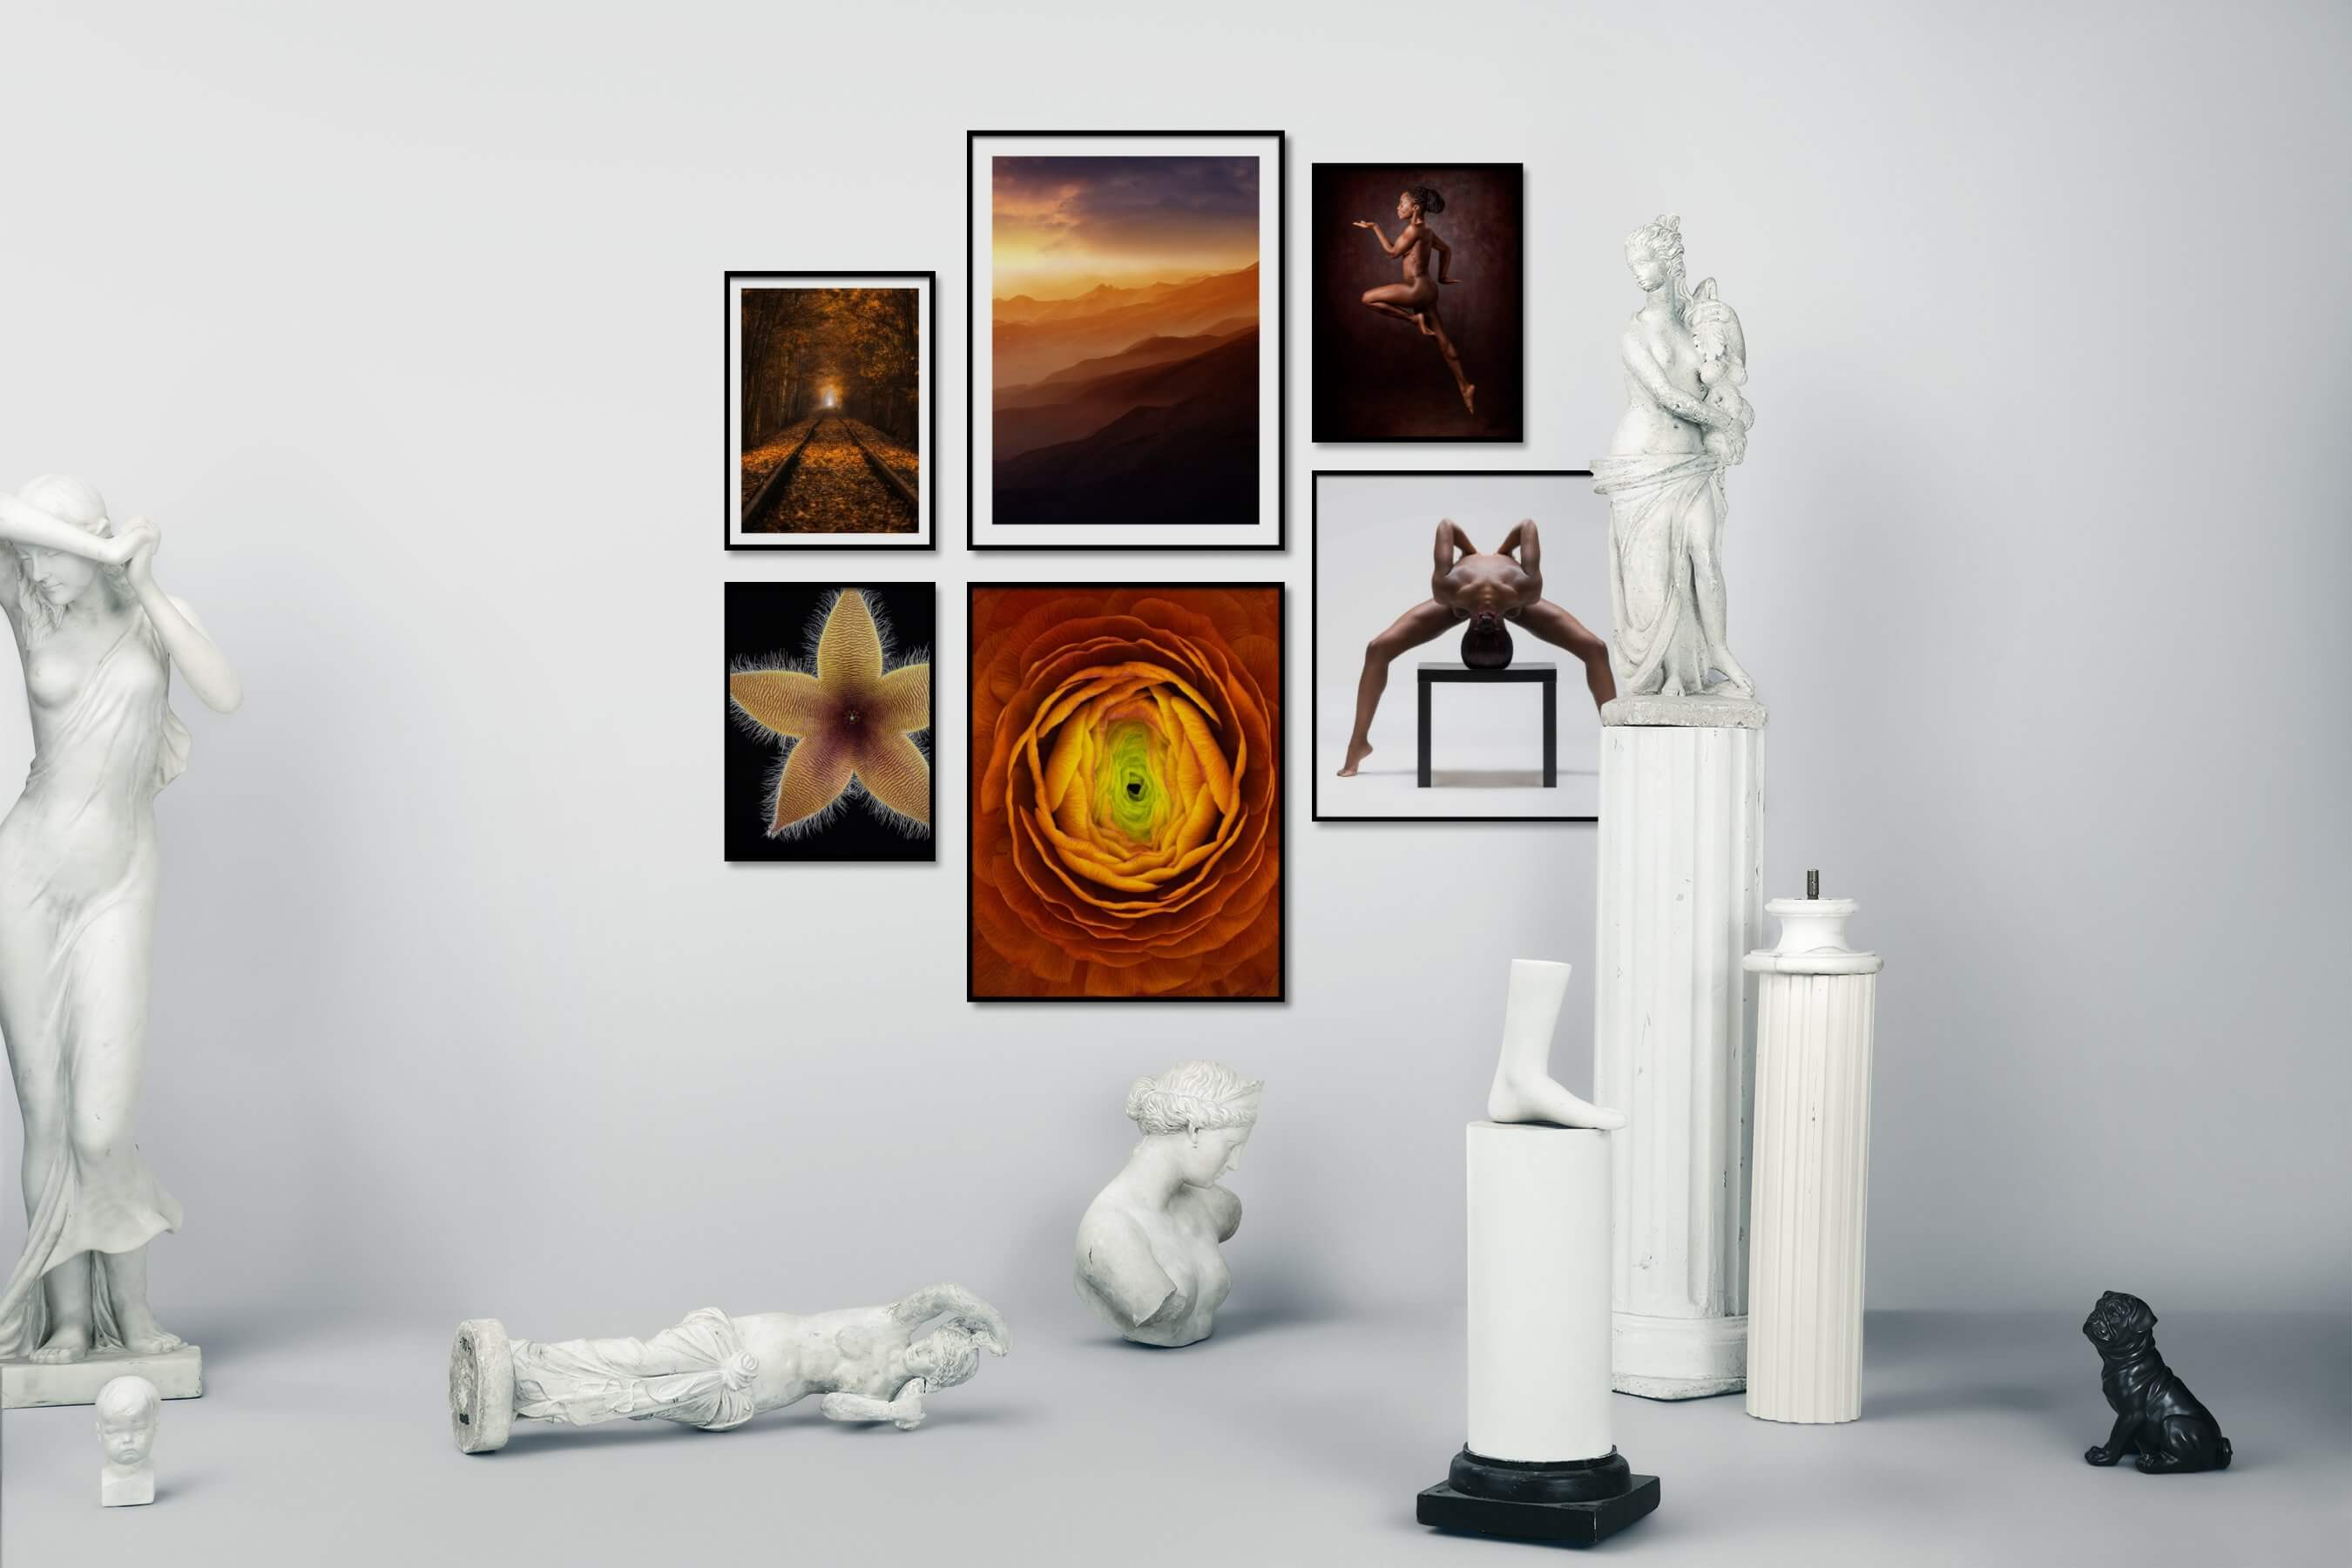 Gallery wall idea with six framed pictures arranged on a wall depicting Nature, Mindfulness, Dark Tones, For the Minimalist, Flowers & Plants, For the Moderate, Fashion & Beauty, and Bright Tones